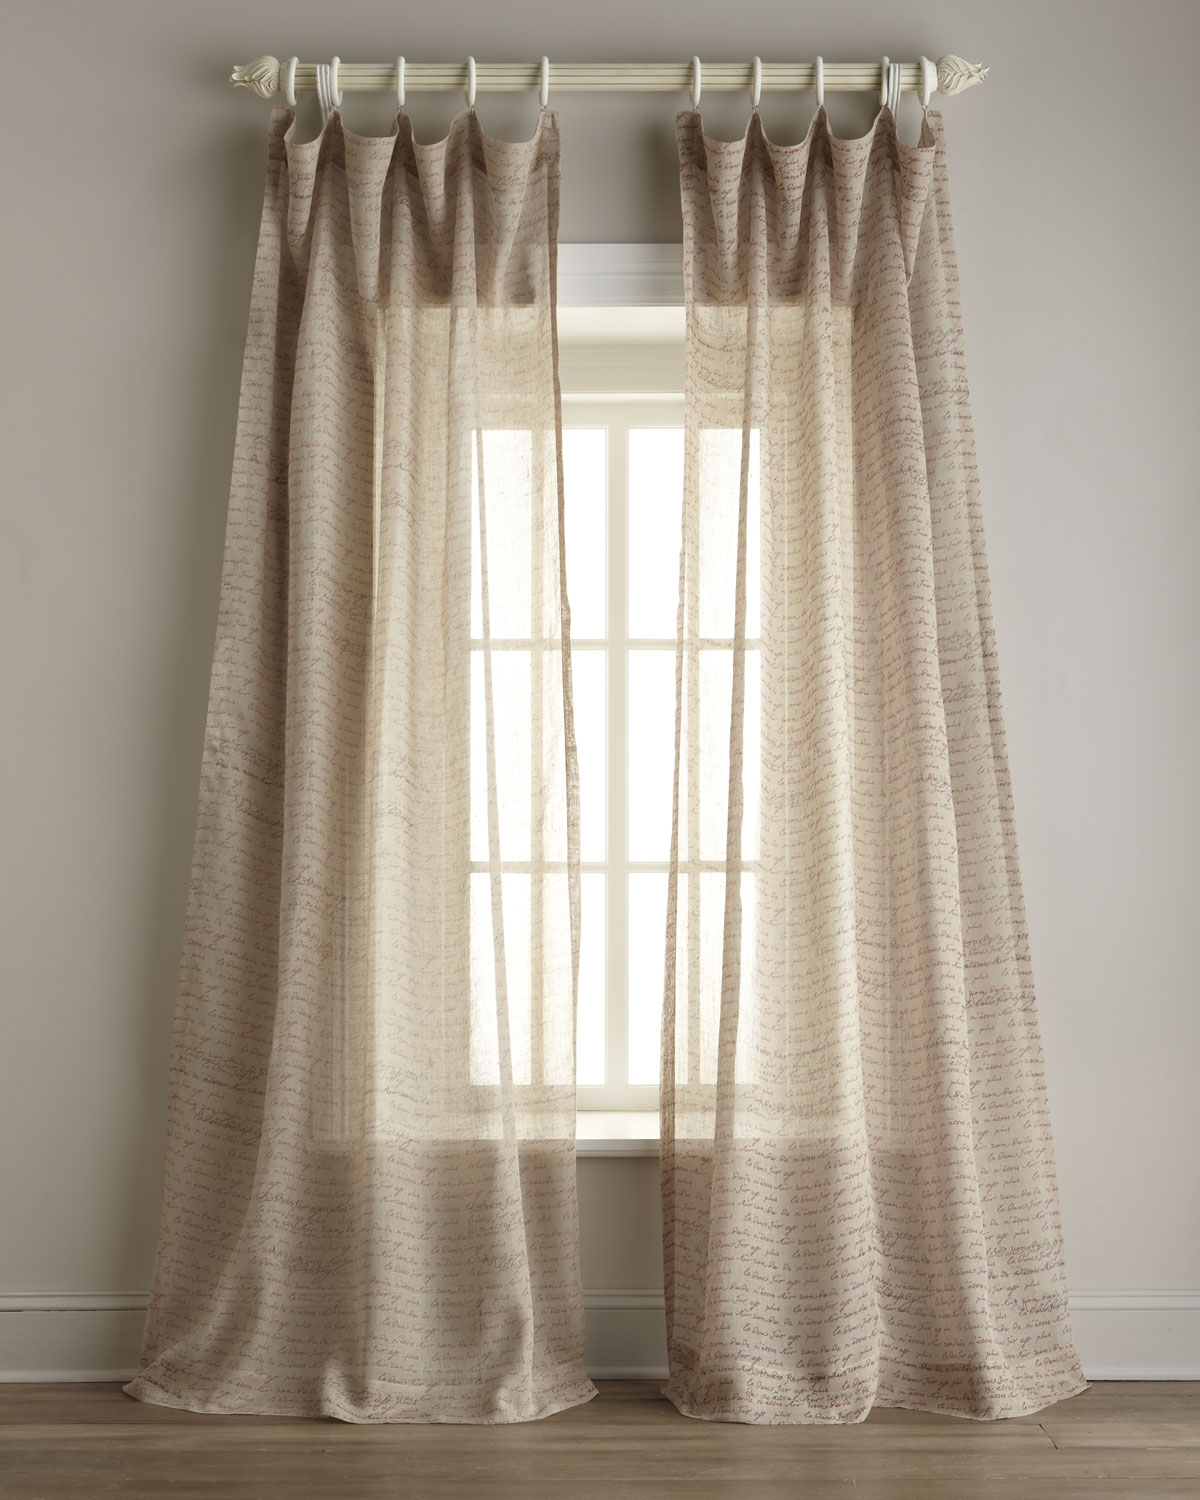 Sheer Linen Curtains Design Ideas And Decor With Sheer Linen Fabric Curtain (Image 13 of 15)